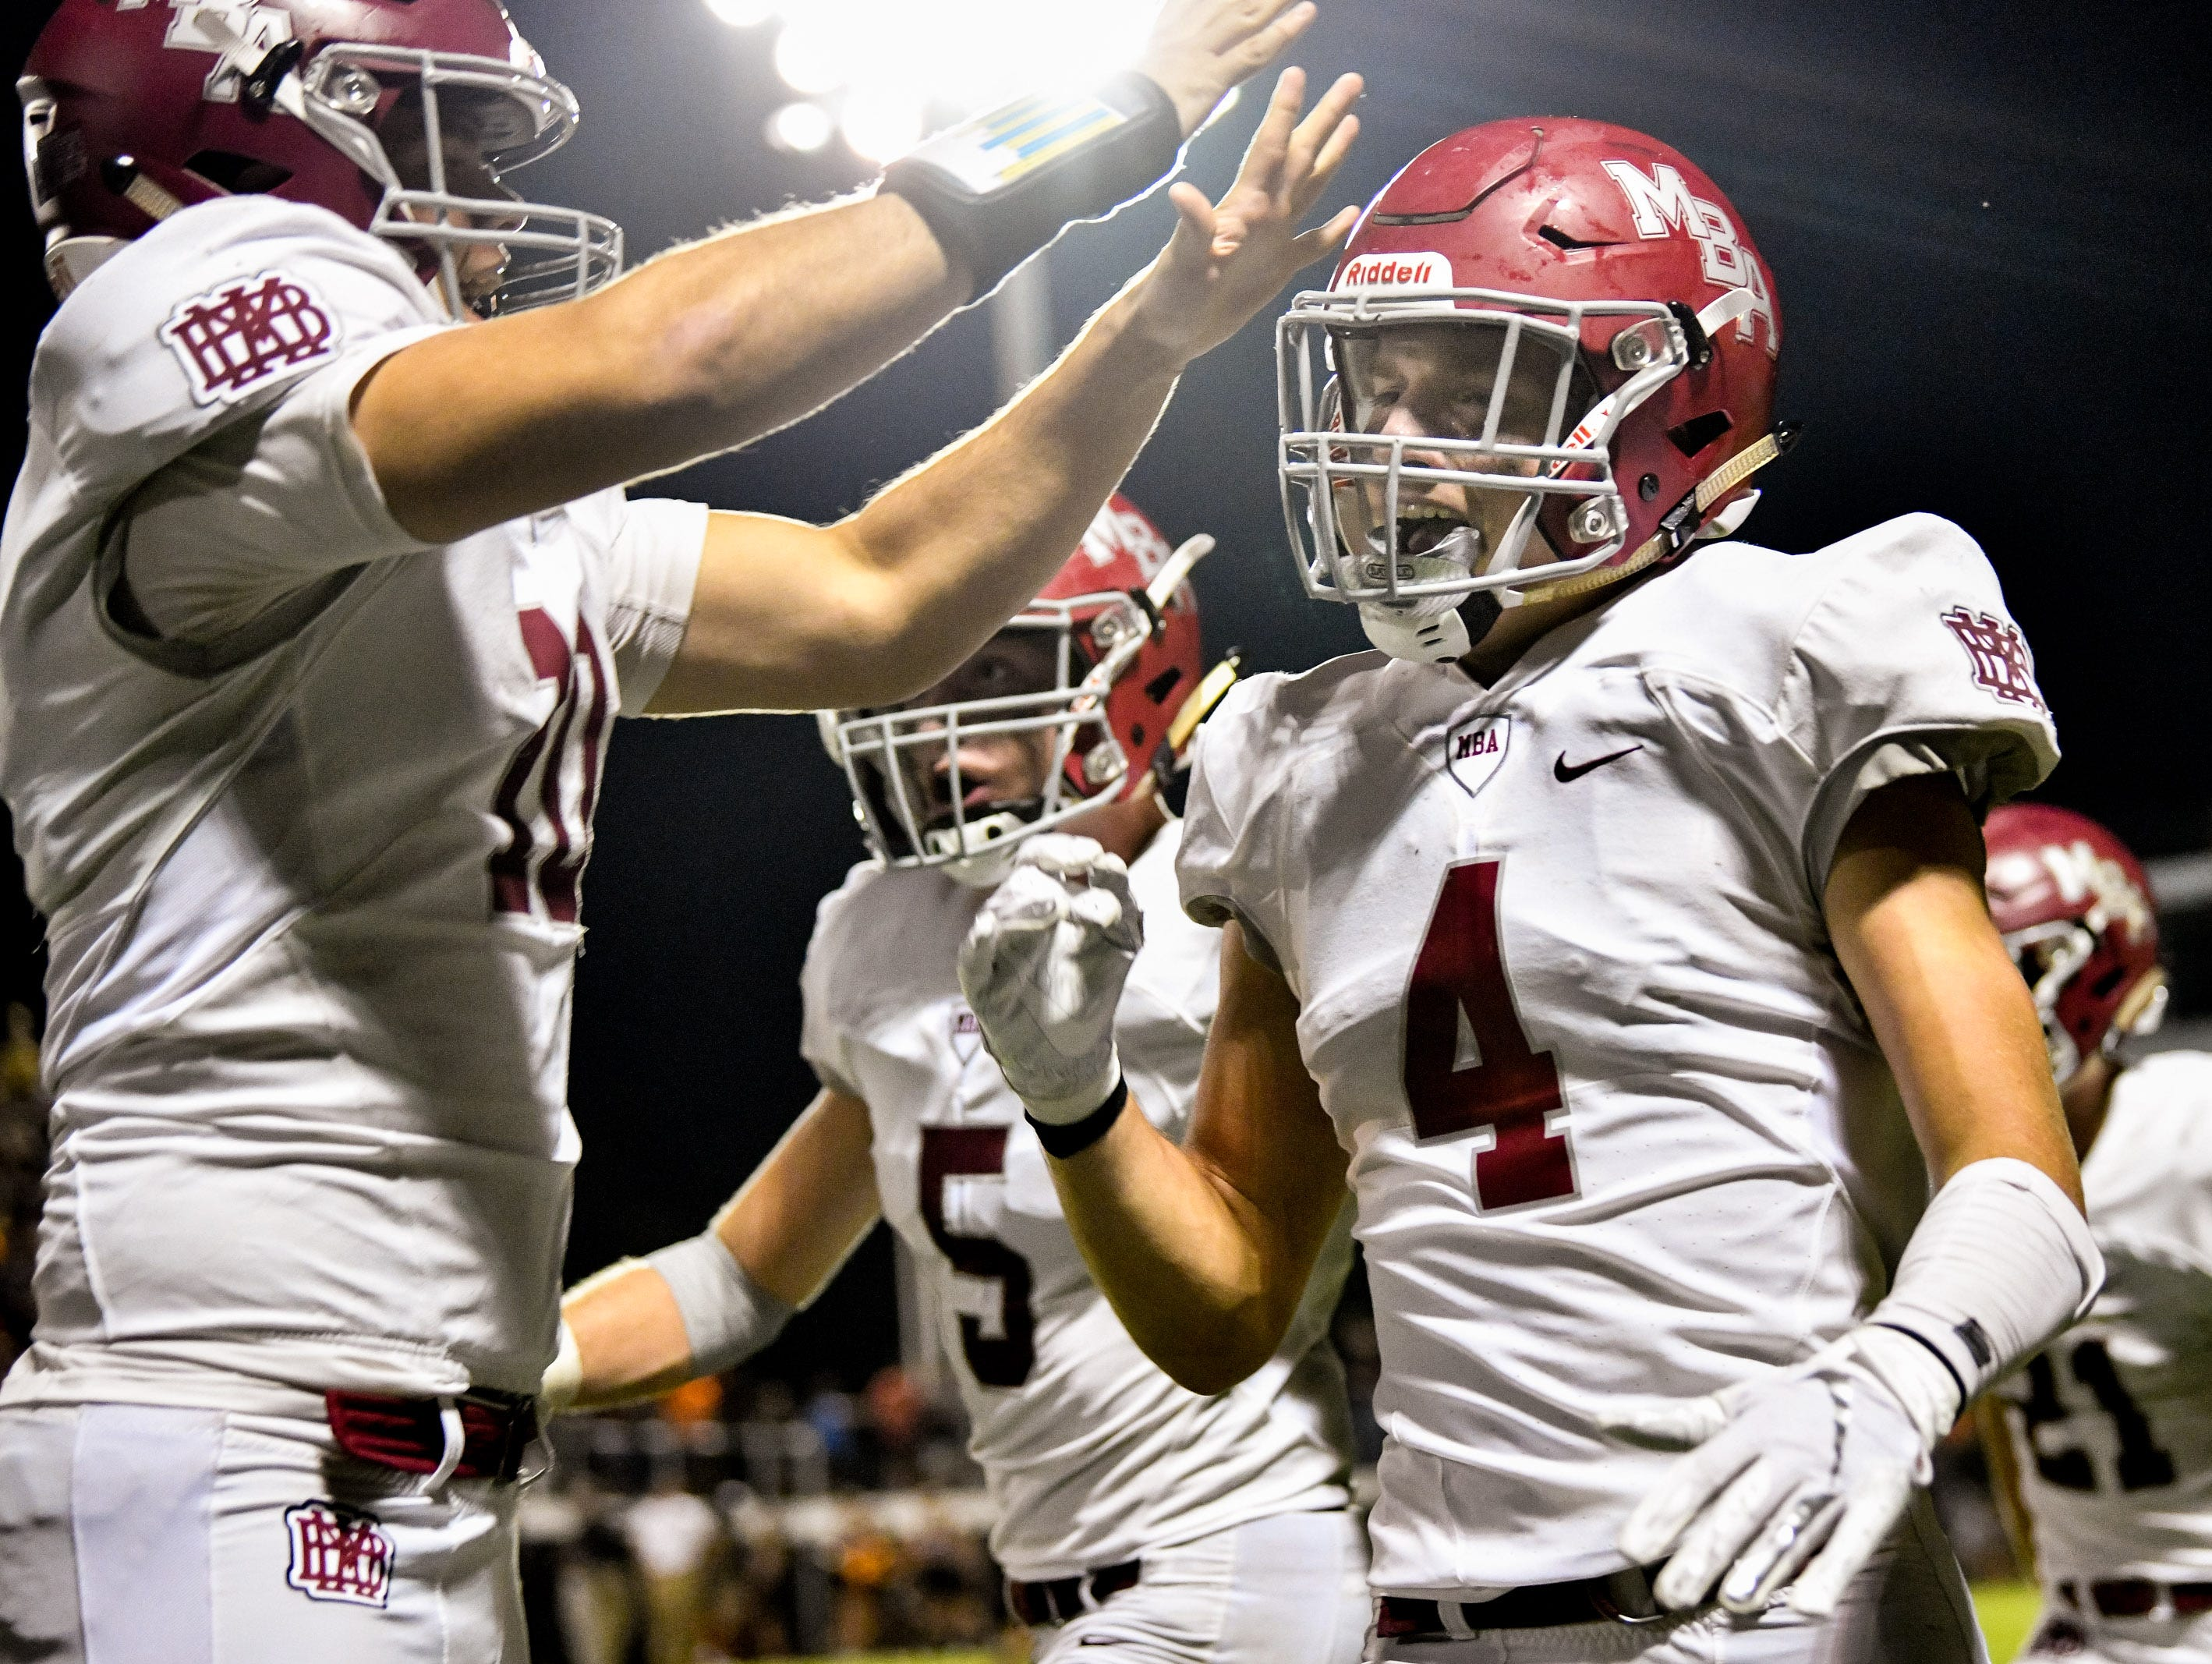 MBA's Tye Herbstreit (4) celebrates scoring a touchdown against Ensworth during the second half at Ensworth High School in Nashville, Tenn., Friday, Oct. 5, 2018.